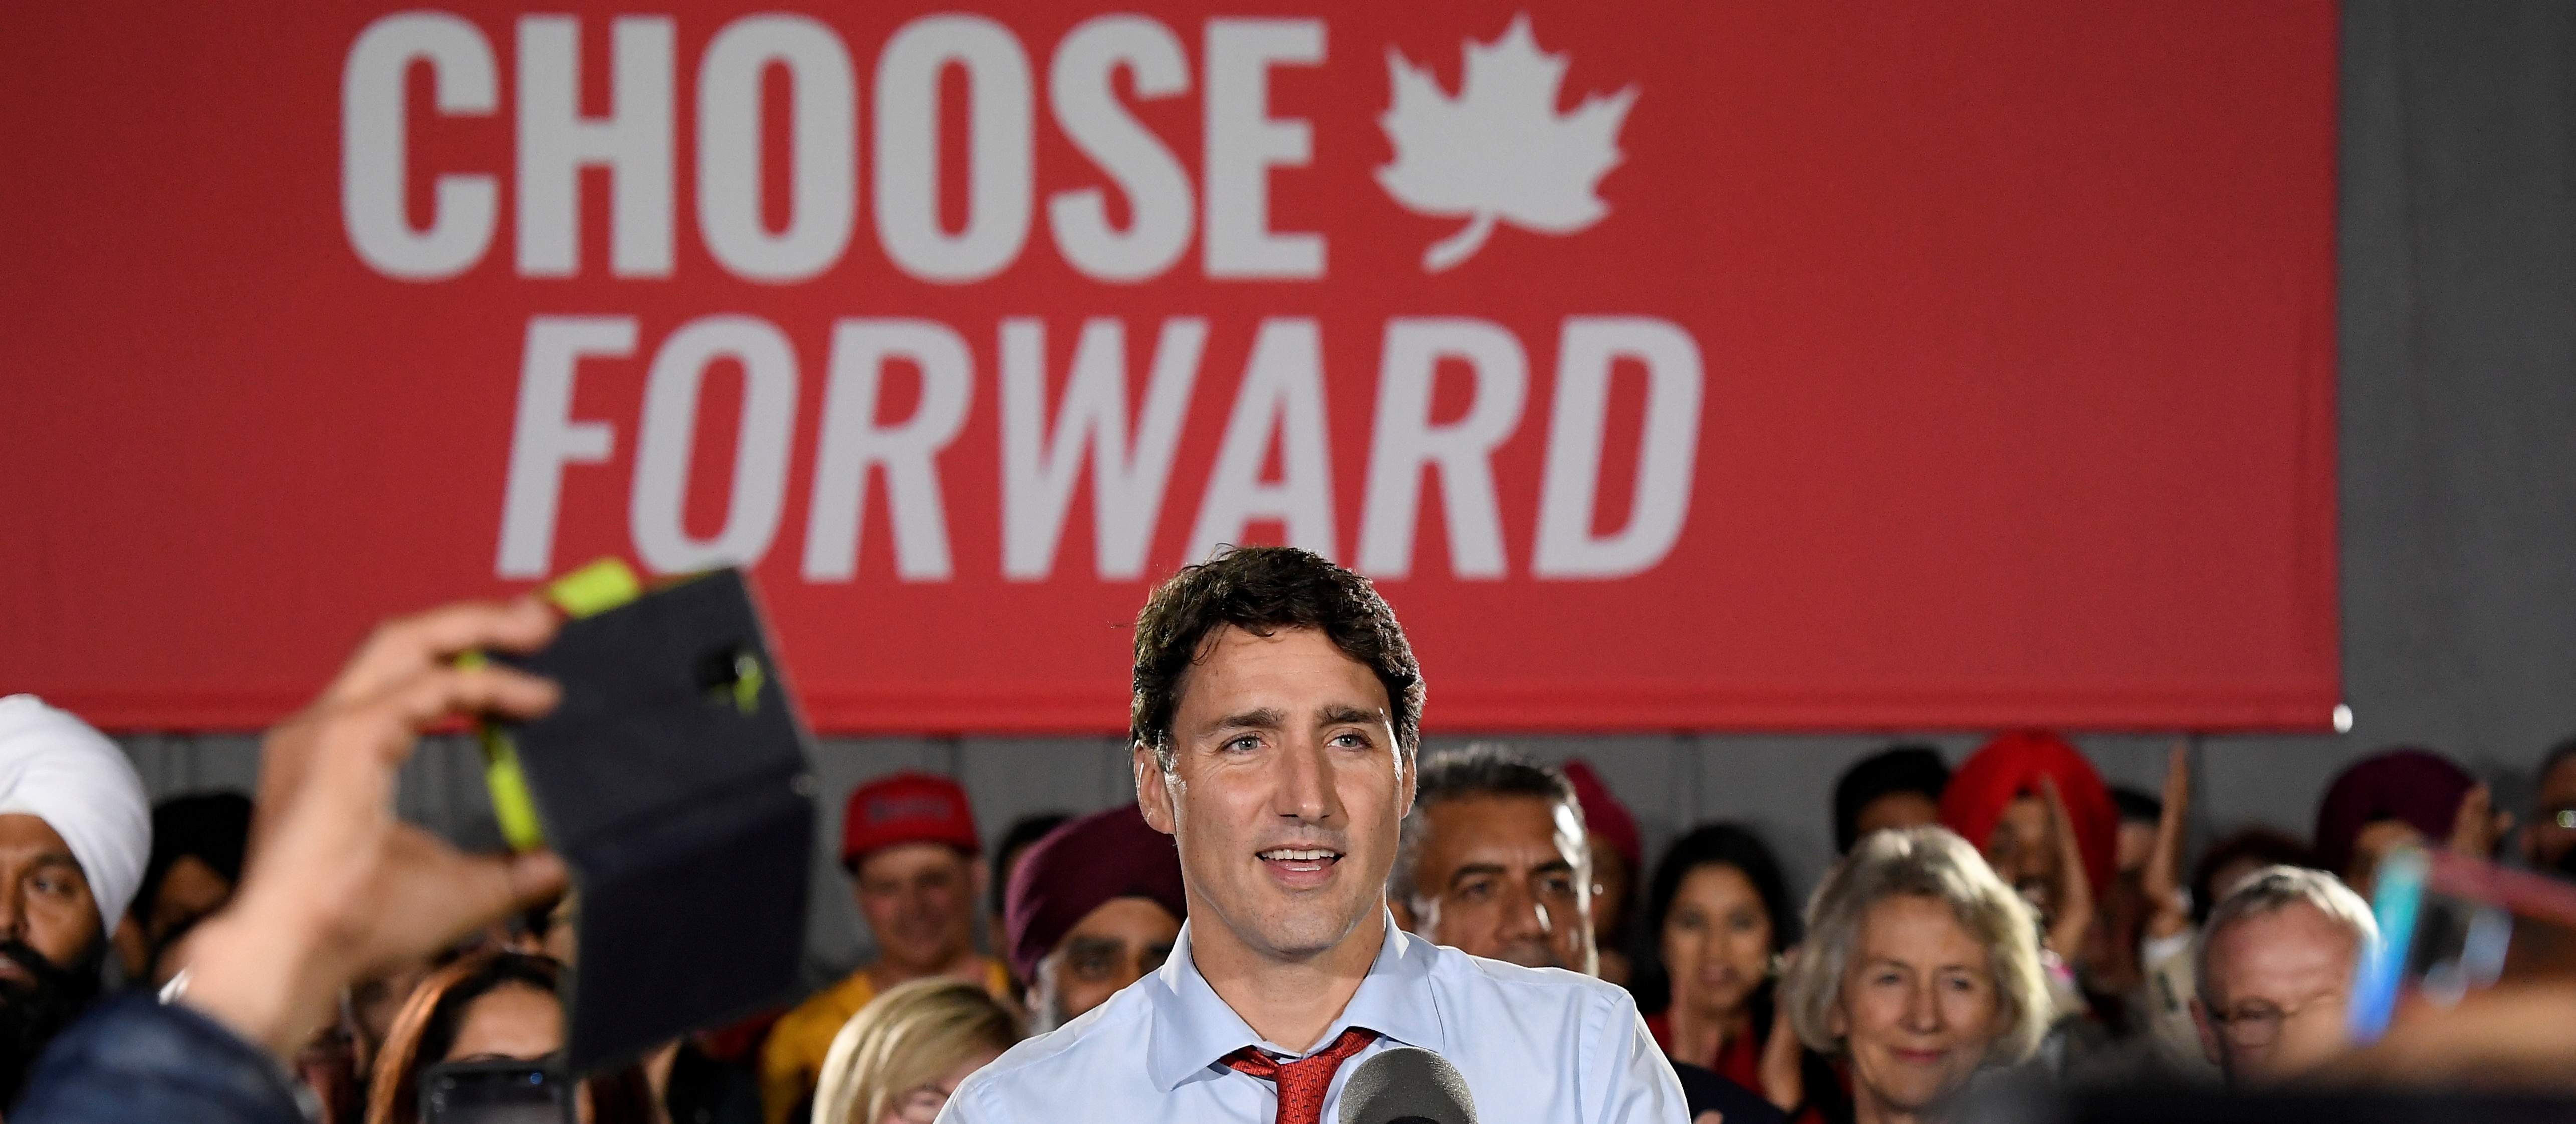 FILE PHOTO: Canada's Prime Minister Justin Trudeau speaks with supporters during an election campaign rally in Surrey, British Columbia, Canada September 24, 2019. REUTERS/Jennifer Gauthier/File Photo